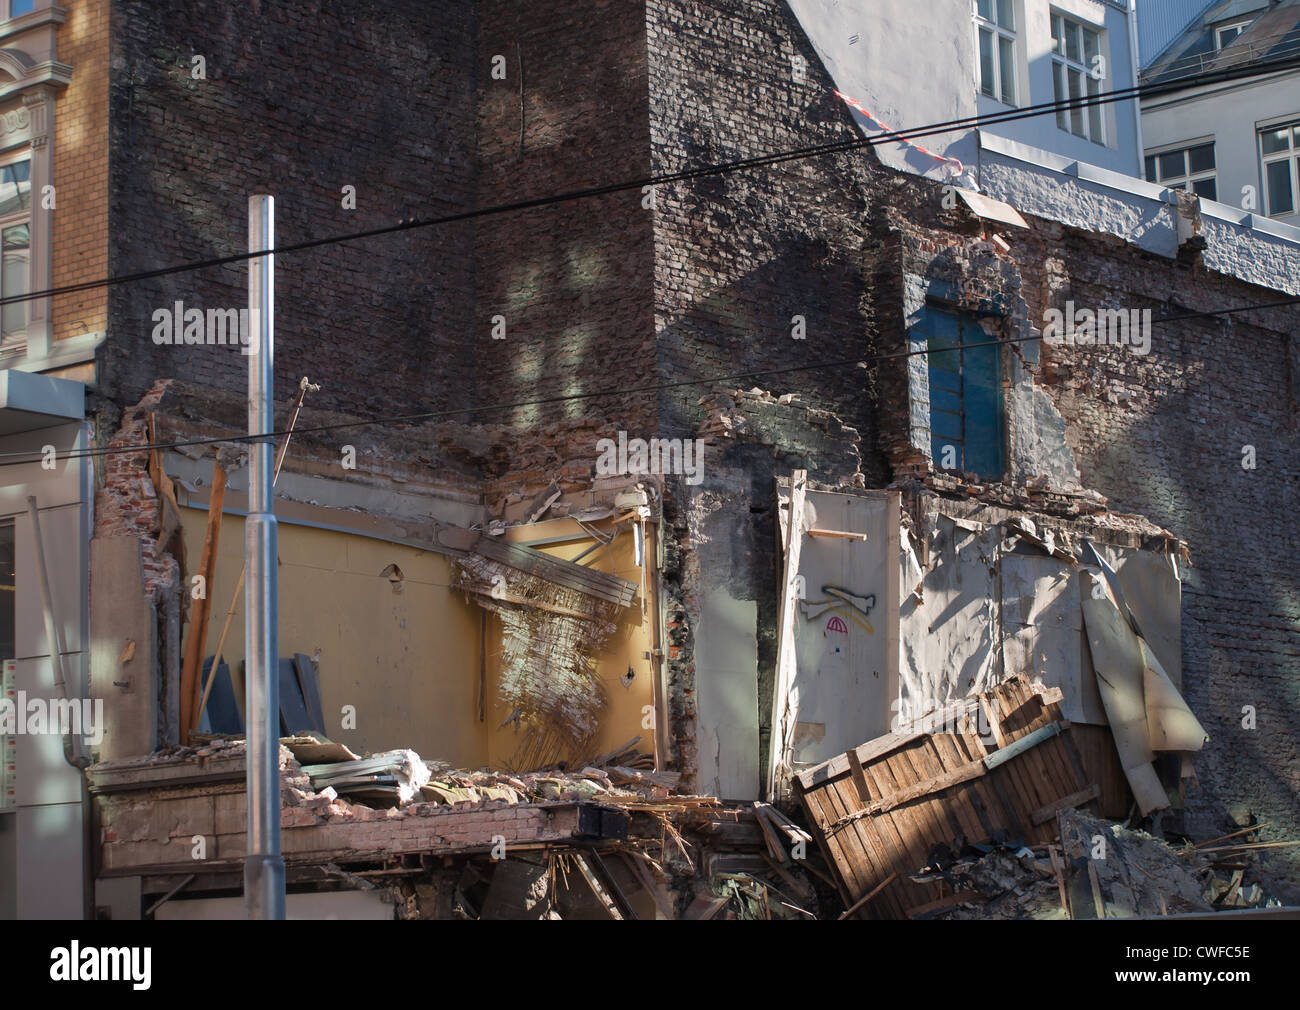 Demolition of an old shop in central Oslo shows signs of what was inside and room for renewal - Stock Image